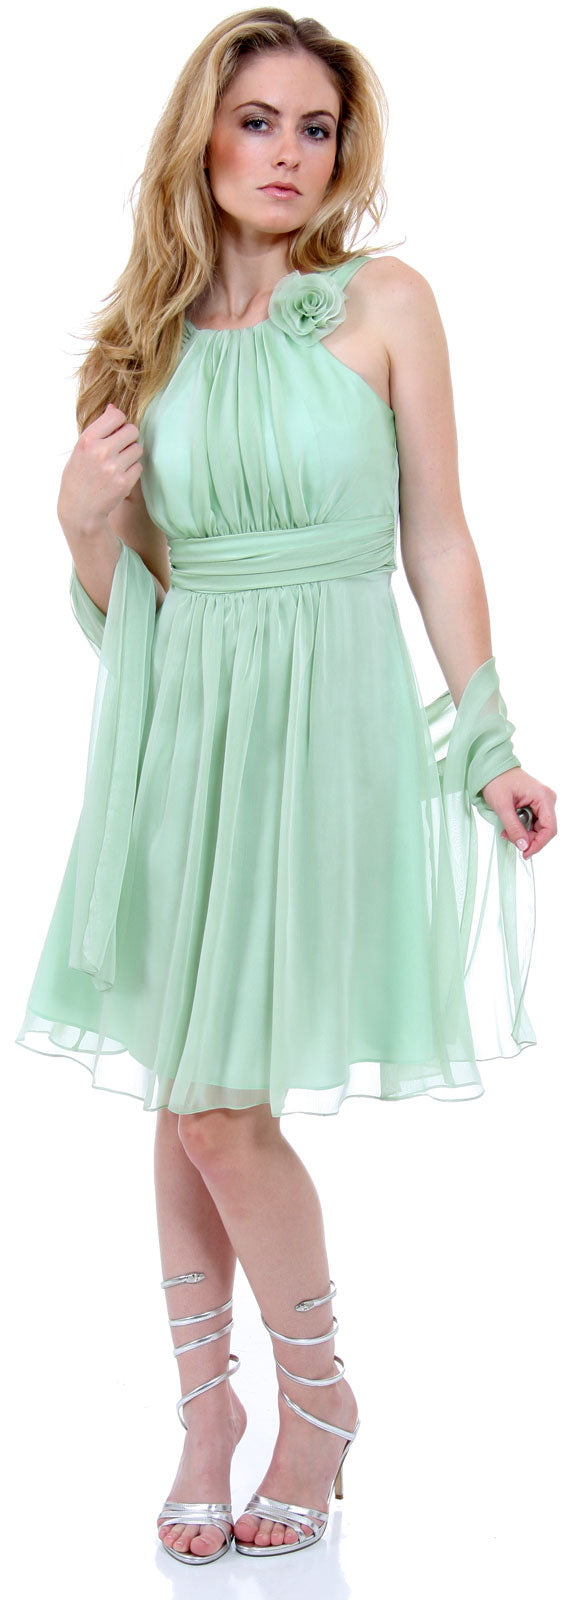 Image of Empire Cut Shirred Knee Length Bridesmaid Party Dress in sage alternative view.